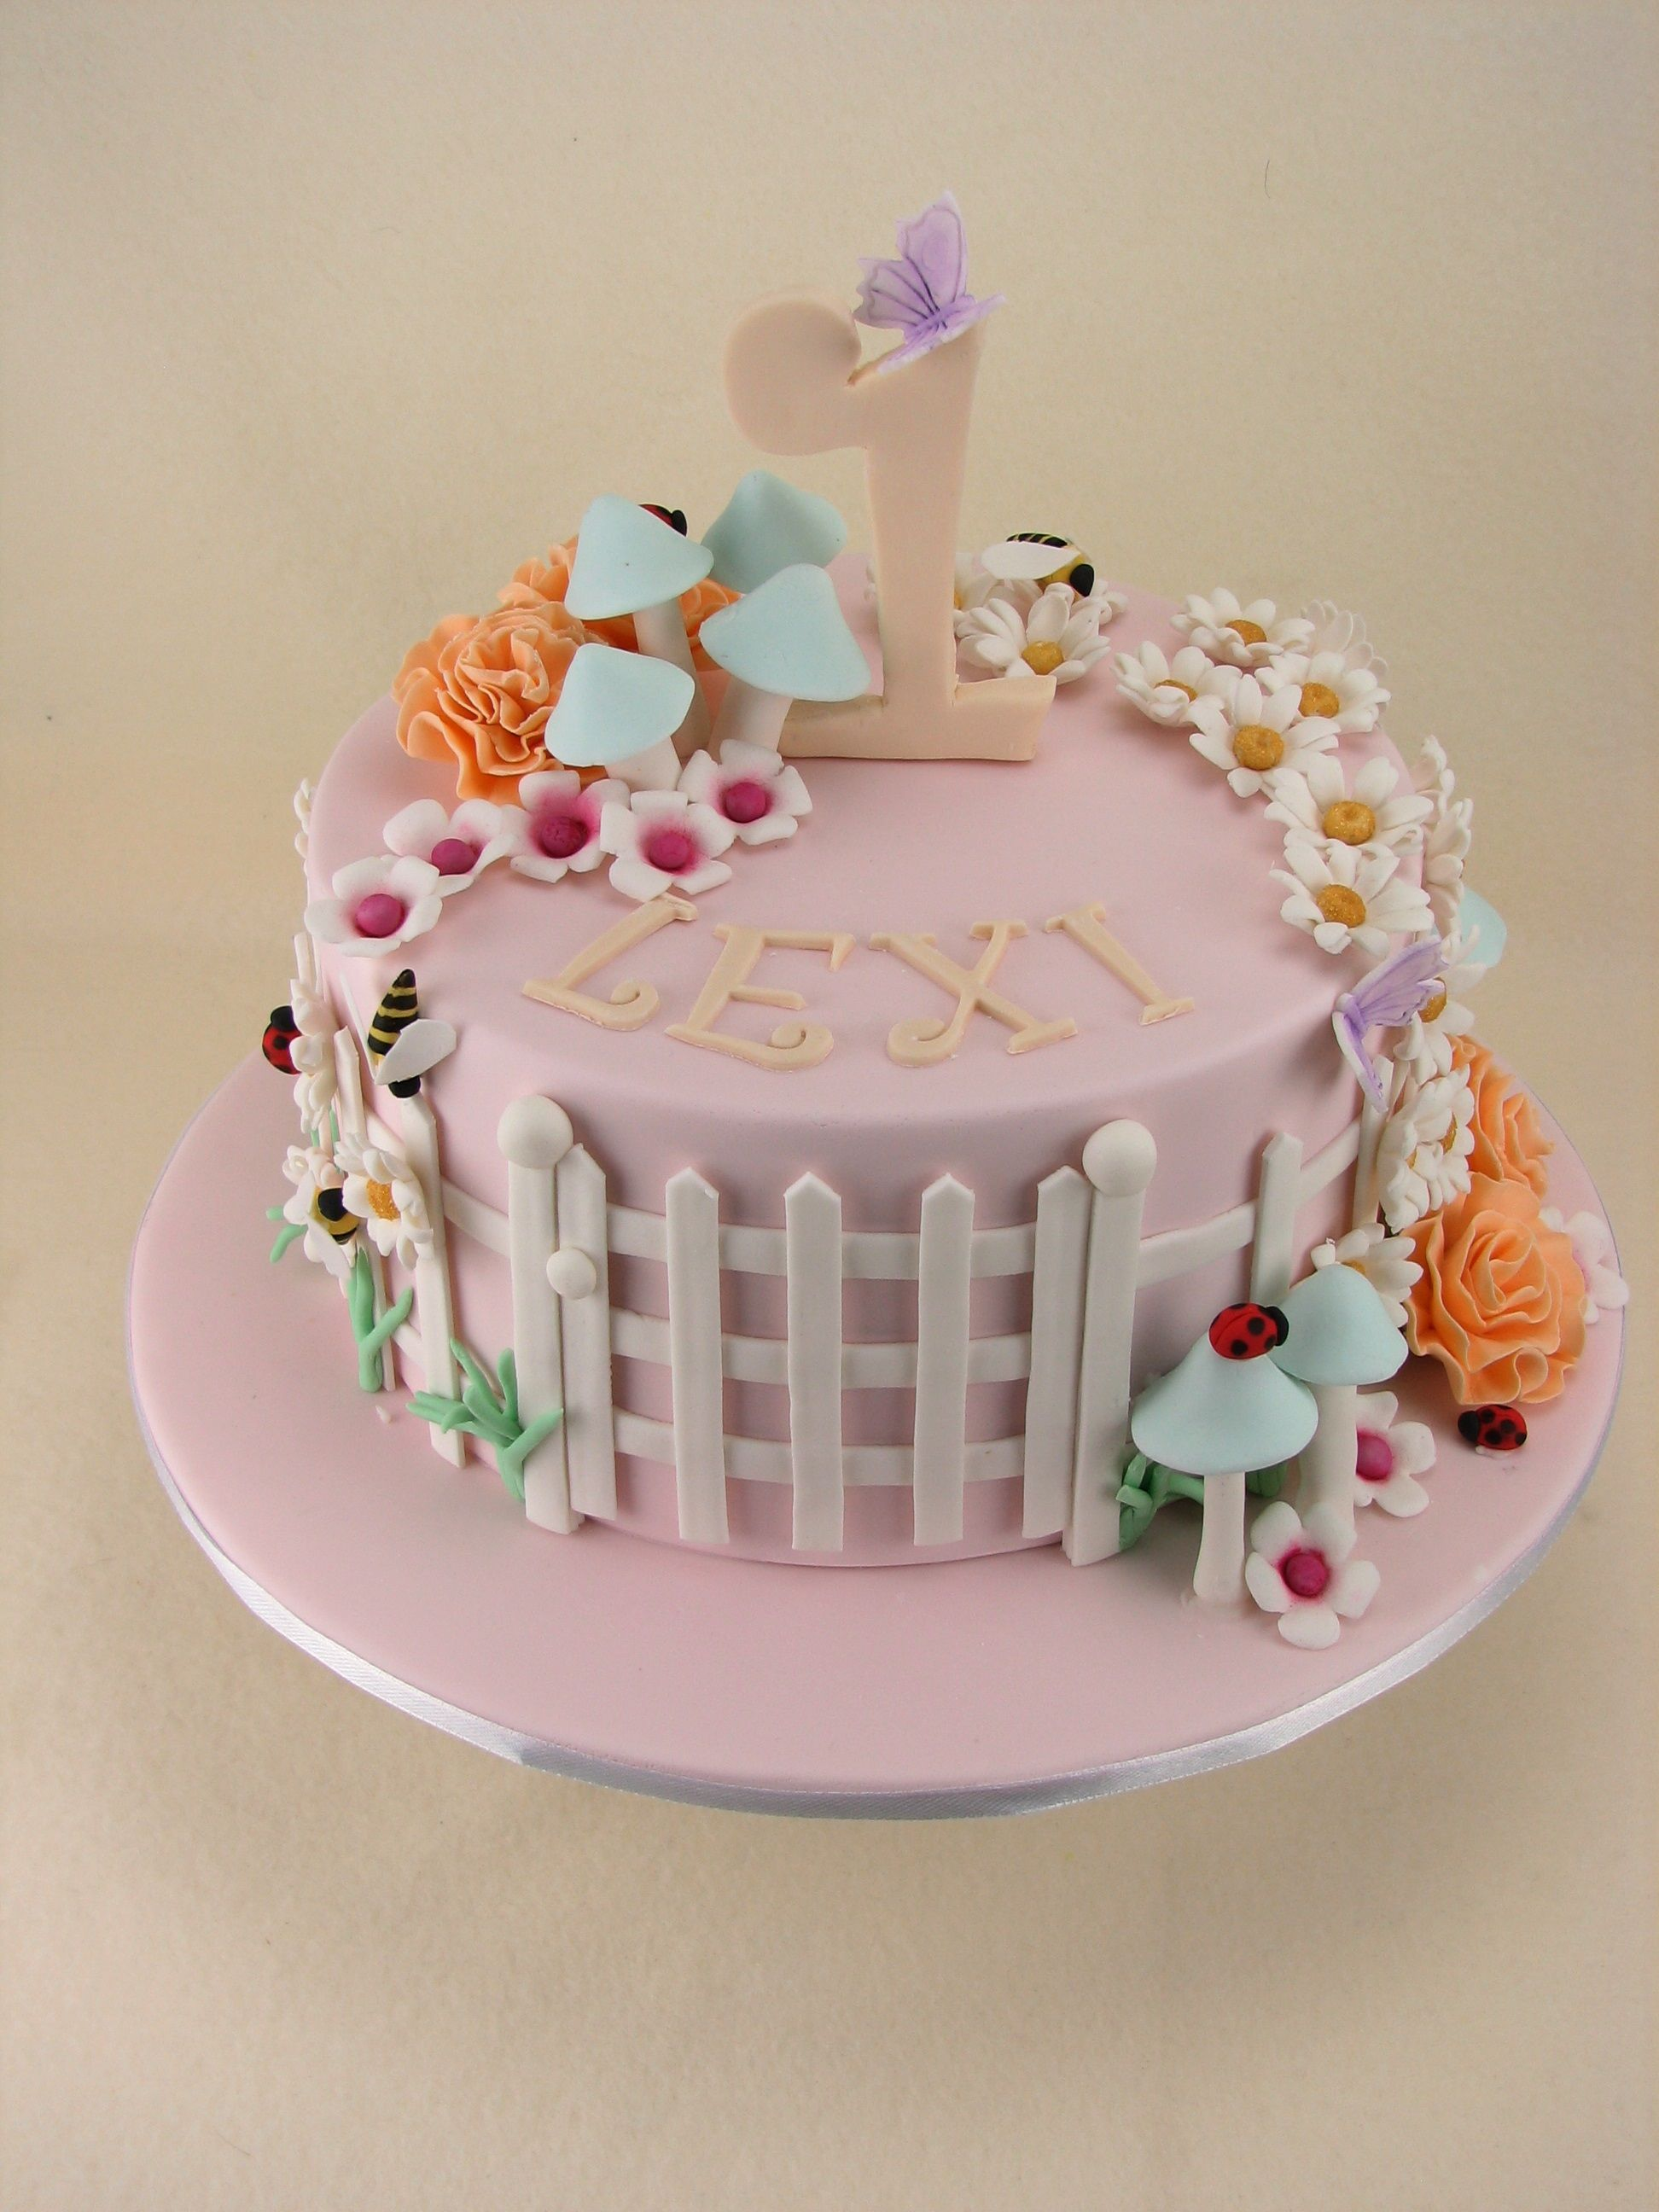 Chocolate mudcake with milk chocolate ganache filling and covered in fondant with a garden of fondant flowers.